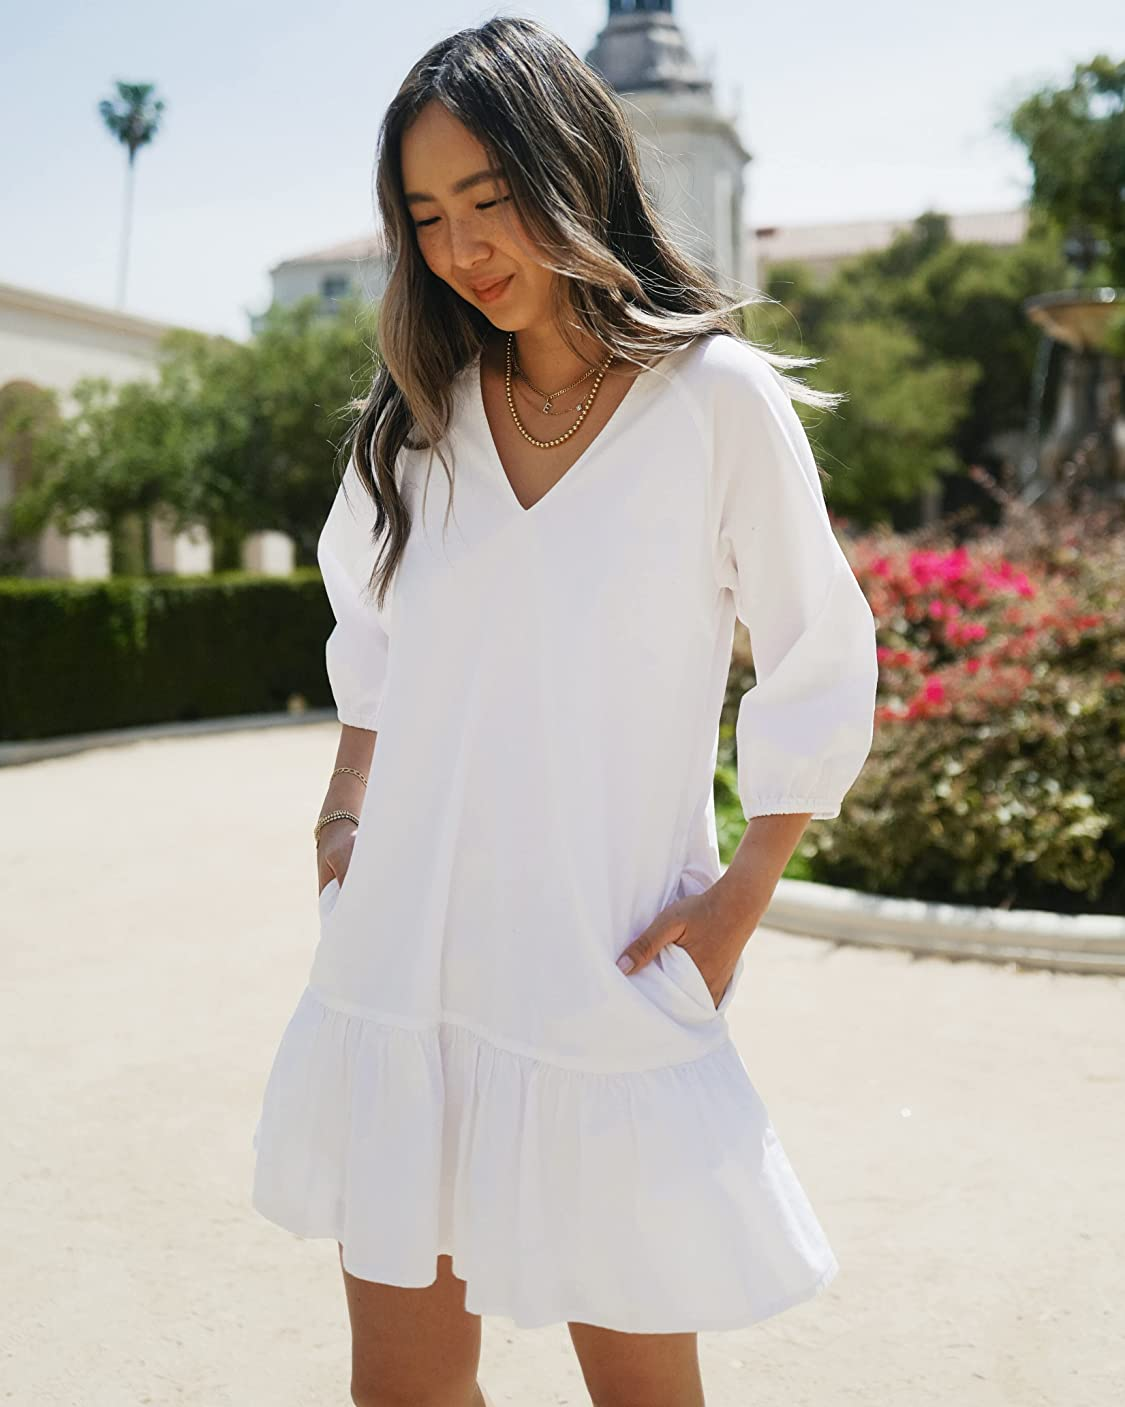 The Drop wears The Drop Women's Bright White Balloon-Sleeve Tiered Mini Dress by @spreadfashion